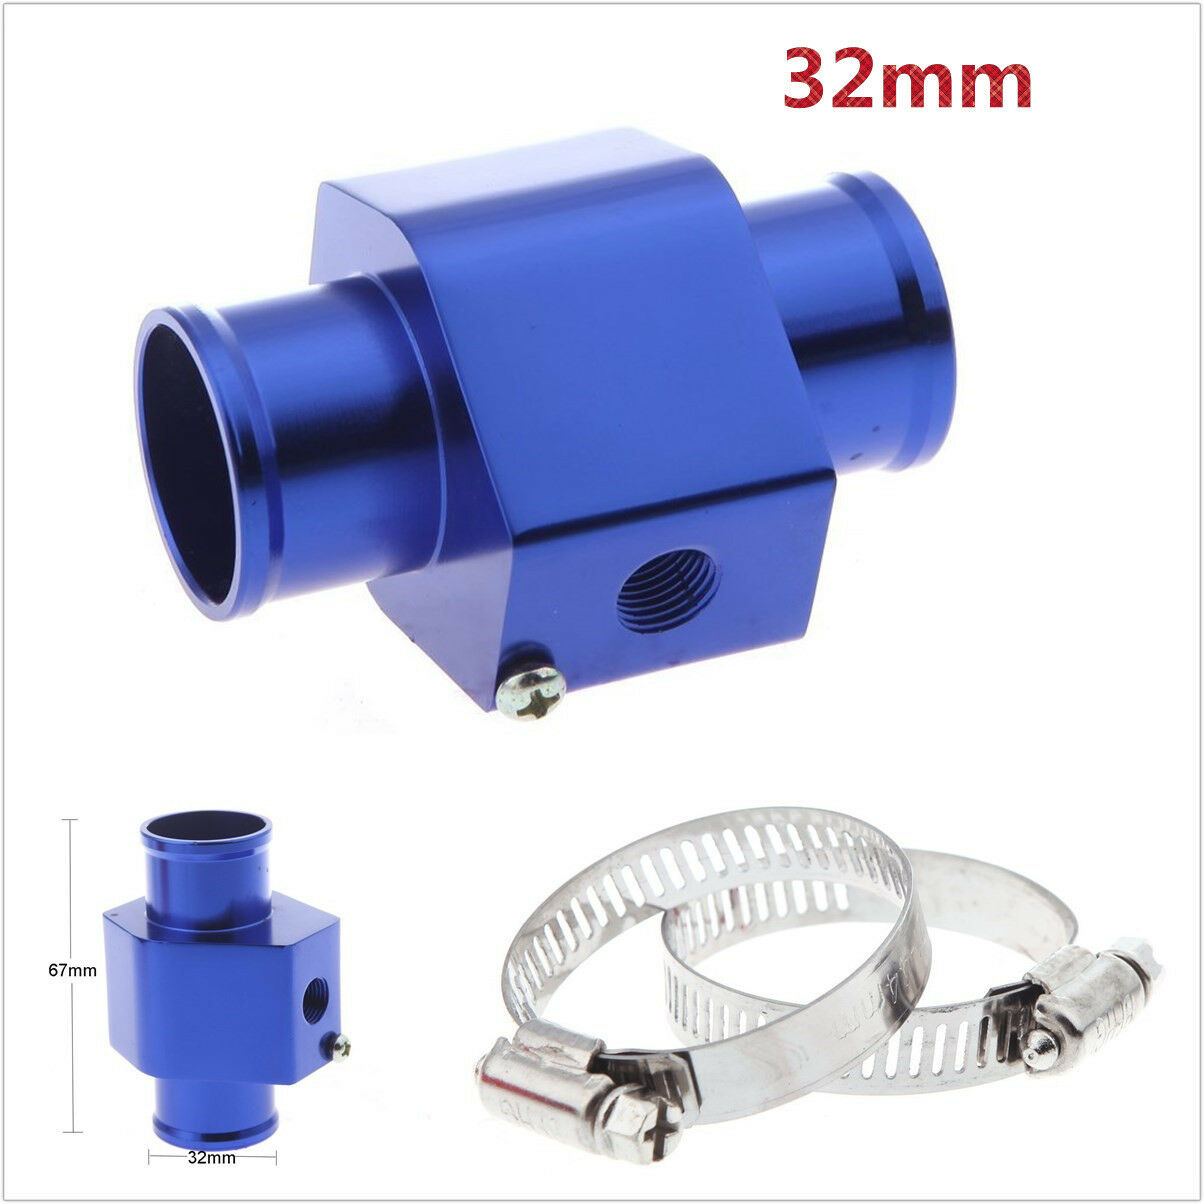 Hose adapter ebay